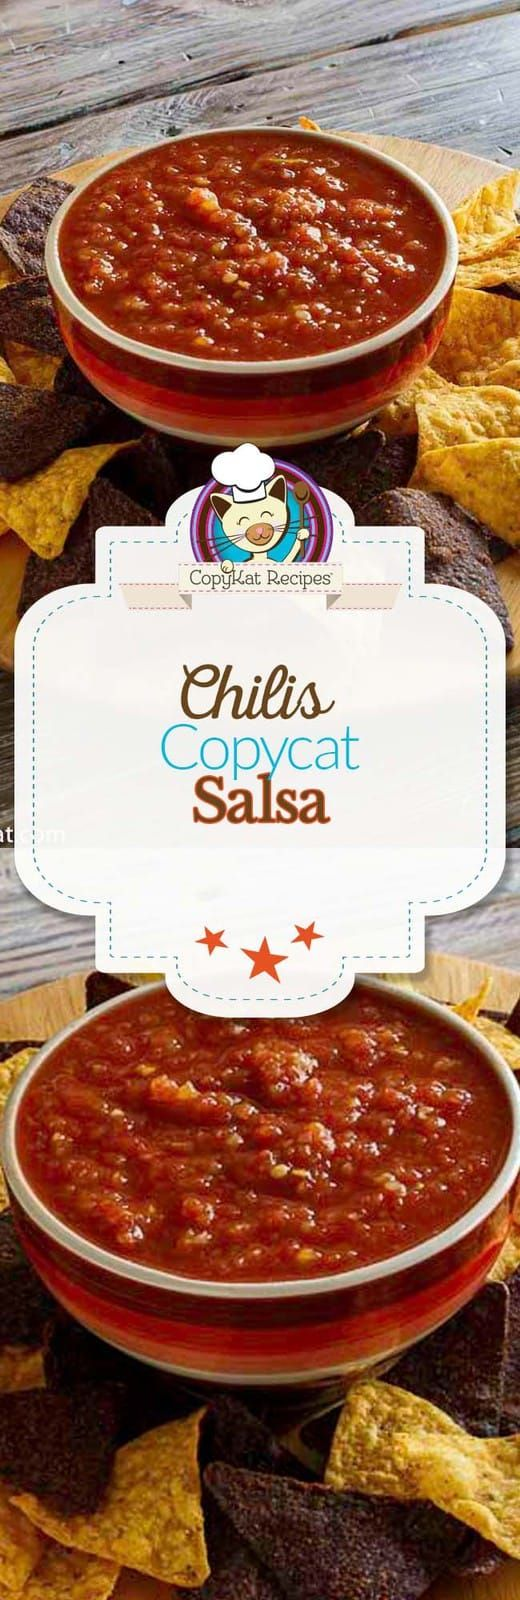 Copycat Chili's Salsa (Make in a blender) Enjoy Chilis Restaurant salsa? It's super easy to make it at home with this copycat recipe and video. Takes only 5 minutes to make in a blender. Canned tomatoes, chiles, onion, and a few more simple ingredients combine for maximum flavor.